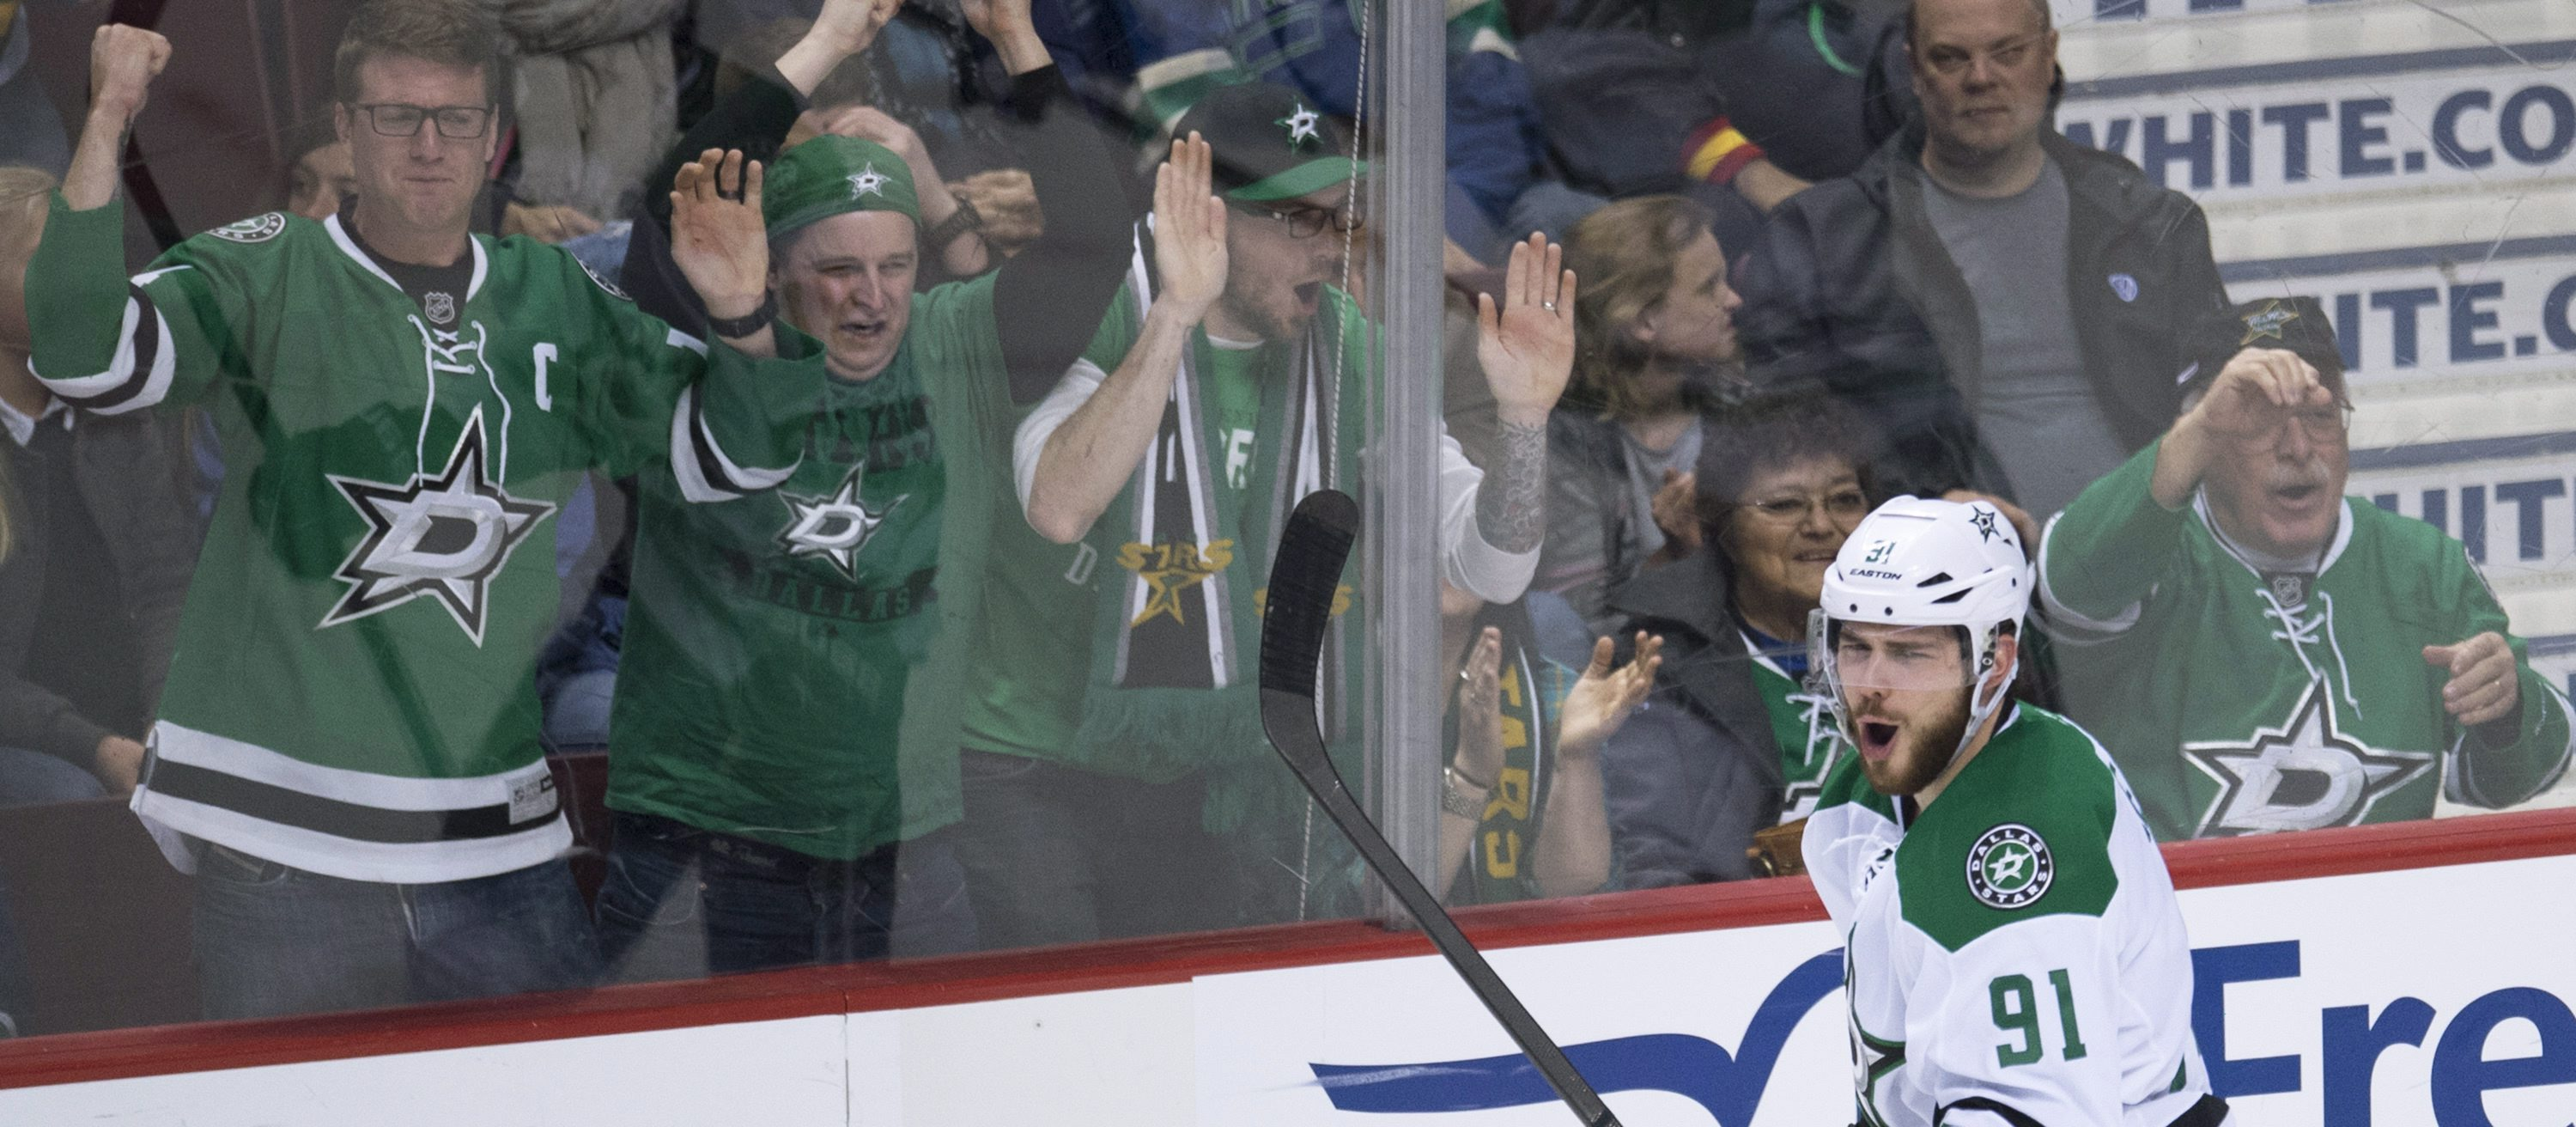 Dallas Stars center Tyler Seguin (91) celebrates his goal against the Vancouver Canucks during the third period of an NHL hockey game Saturday, March 28, 2015, in Vancouver, British Columbia. (AP Photo/The Canadian Press, Jonathan Hayward)